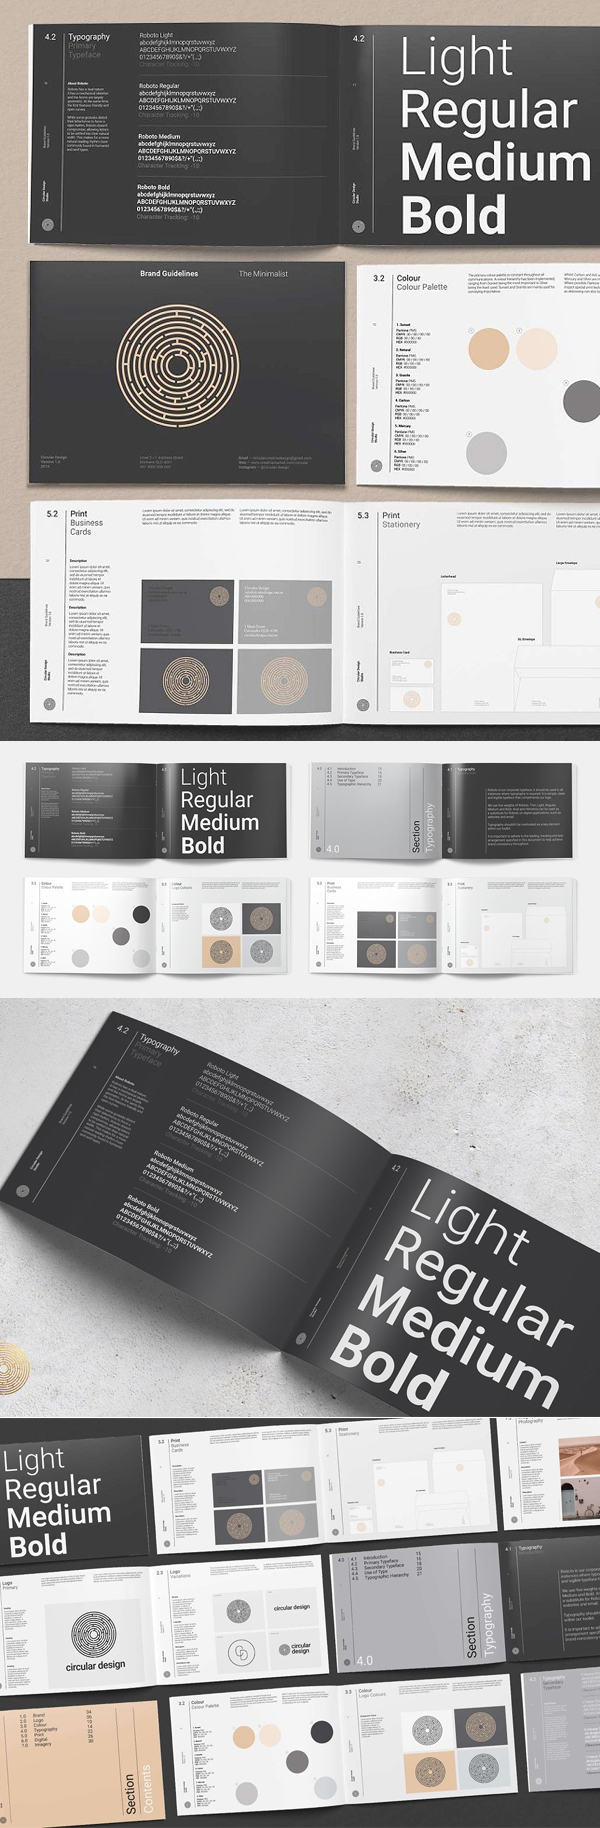 Creative Brand Guidelines Template